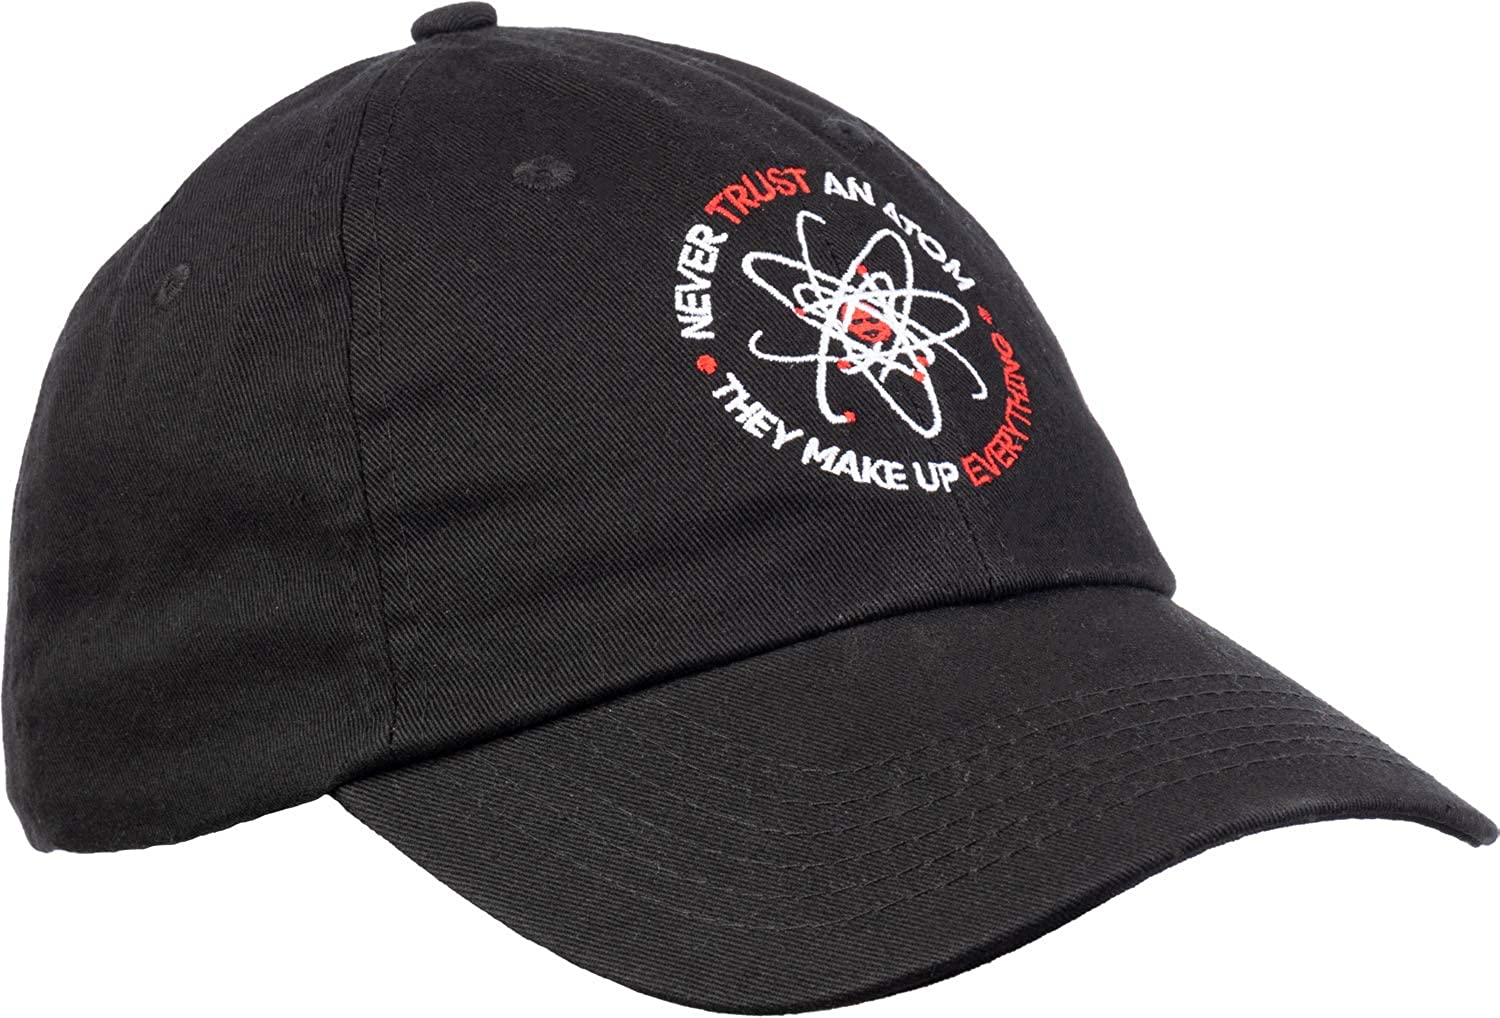 Funny Science Dad Joke Cap Hat Never Trust an Atom They Make up Everything